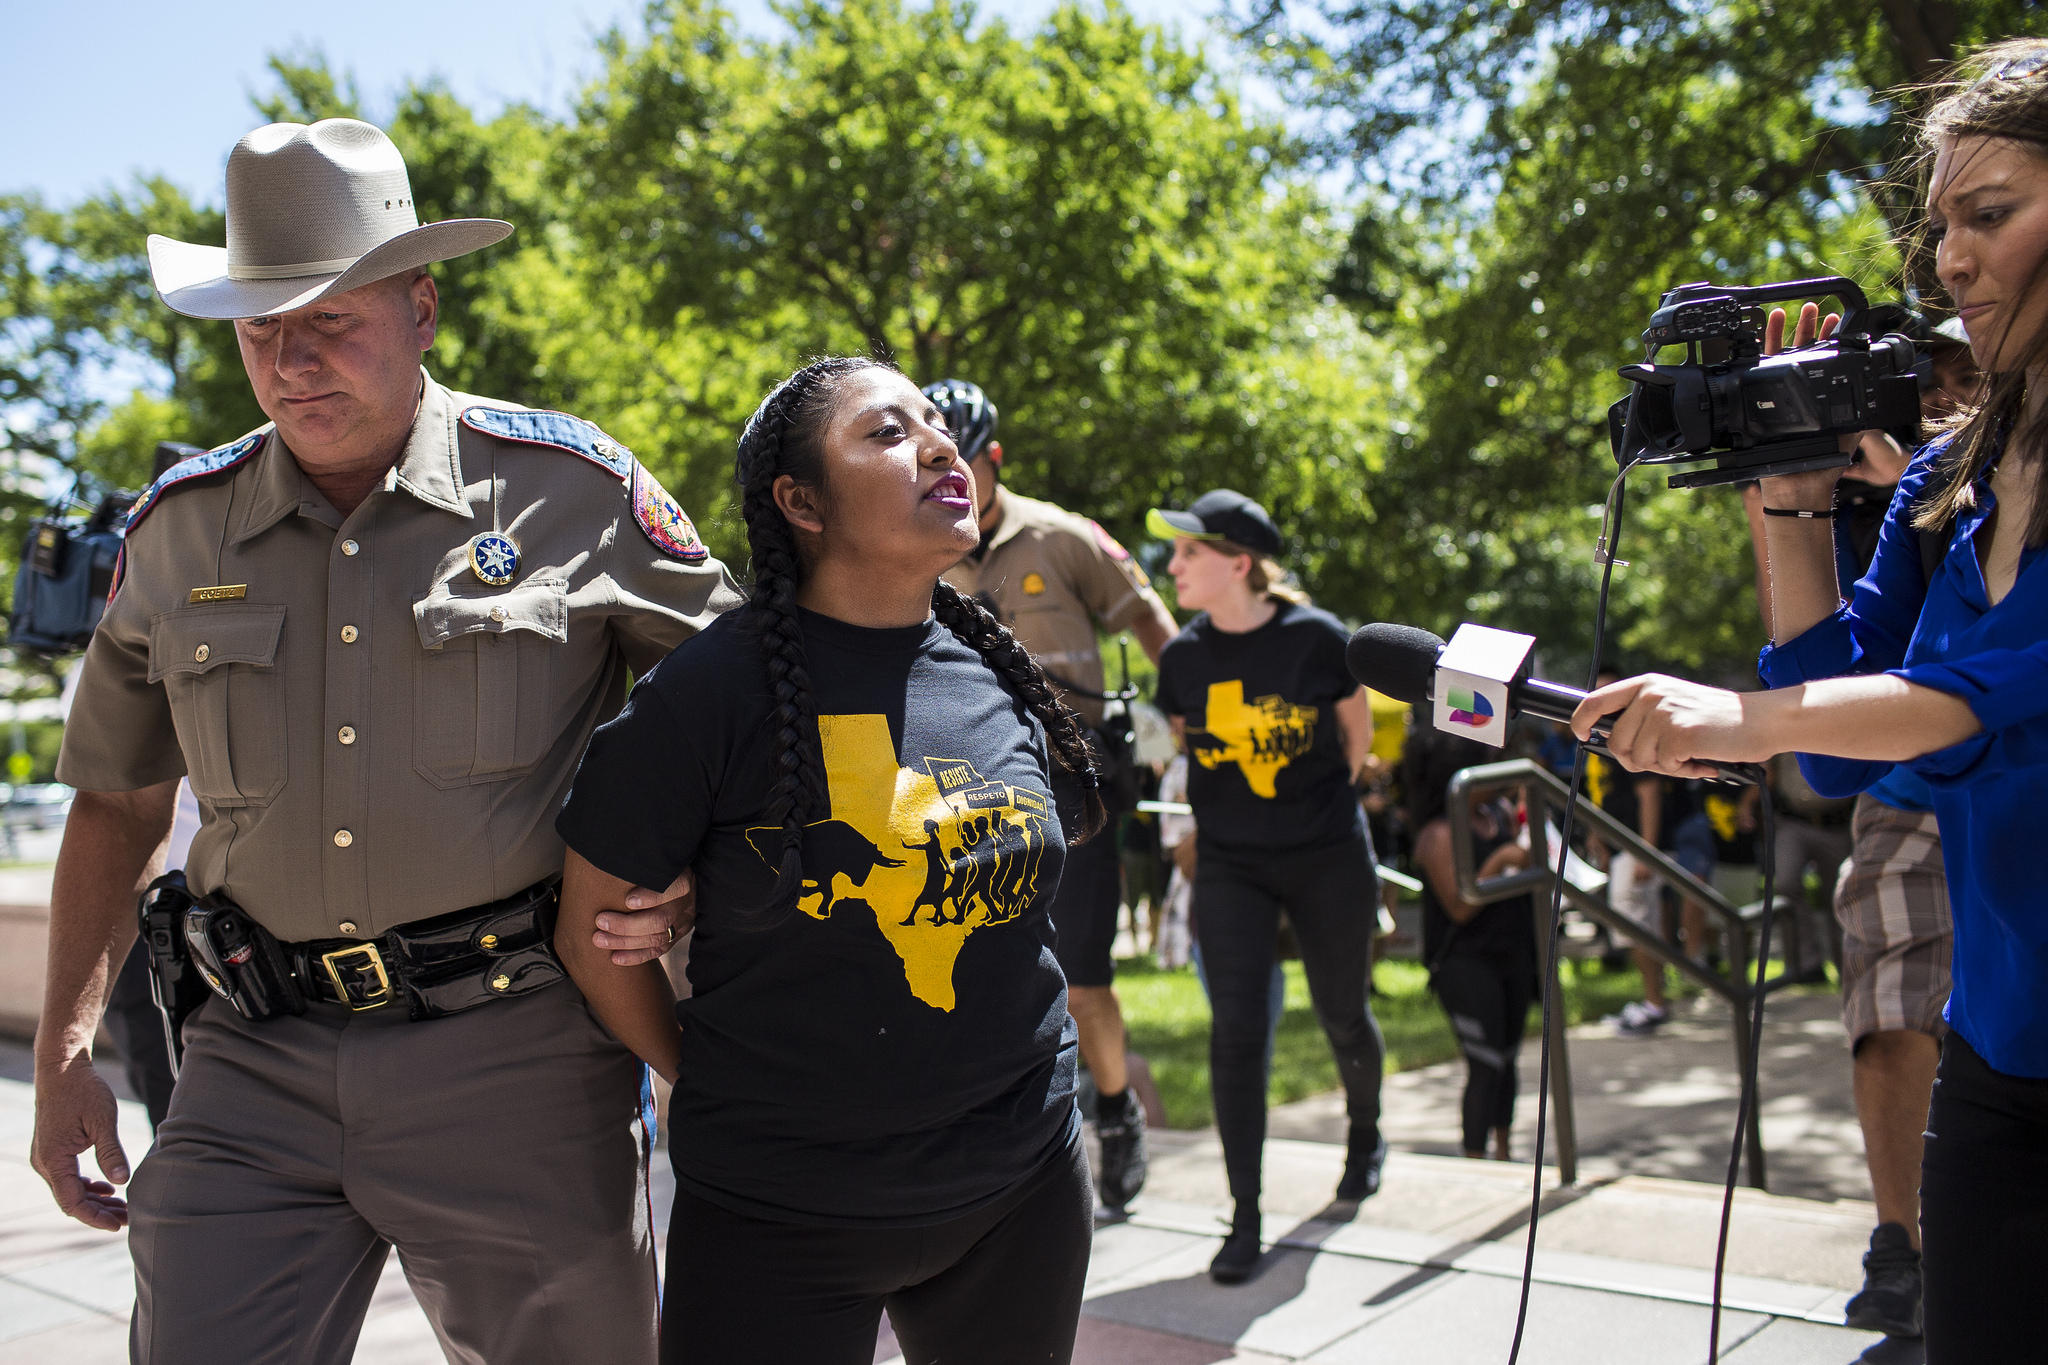 Texas Police Arrest DACA Recipients In Austin Protest